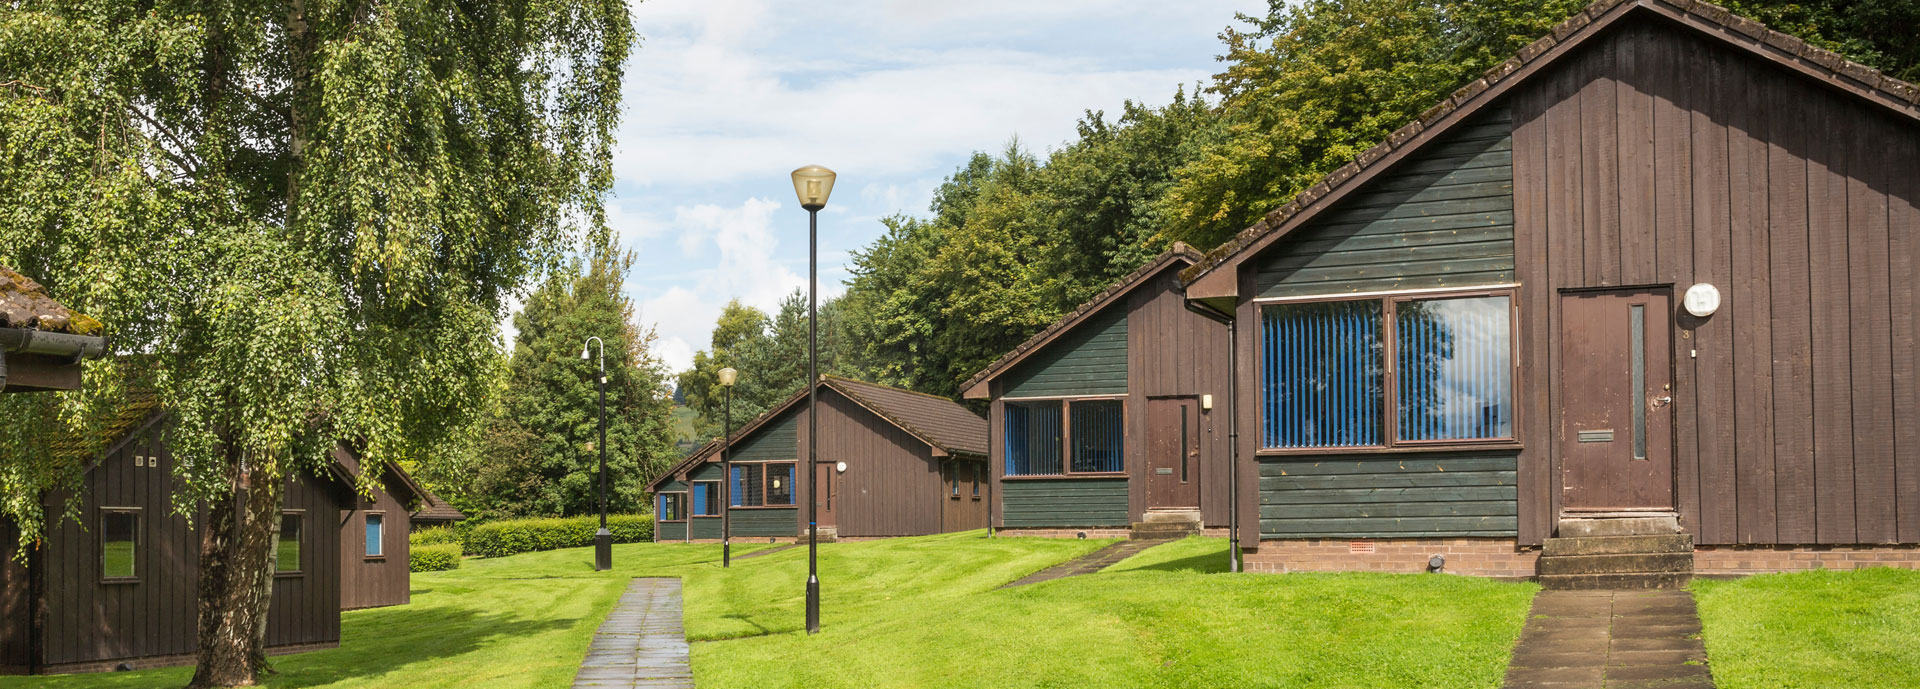 Spittal Hill accommodation,  University of Stirling